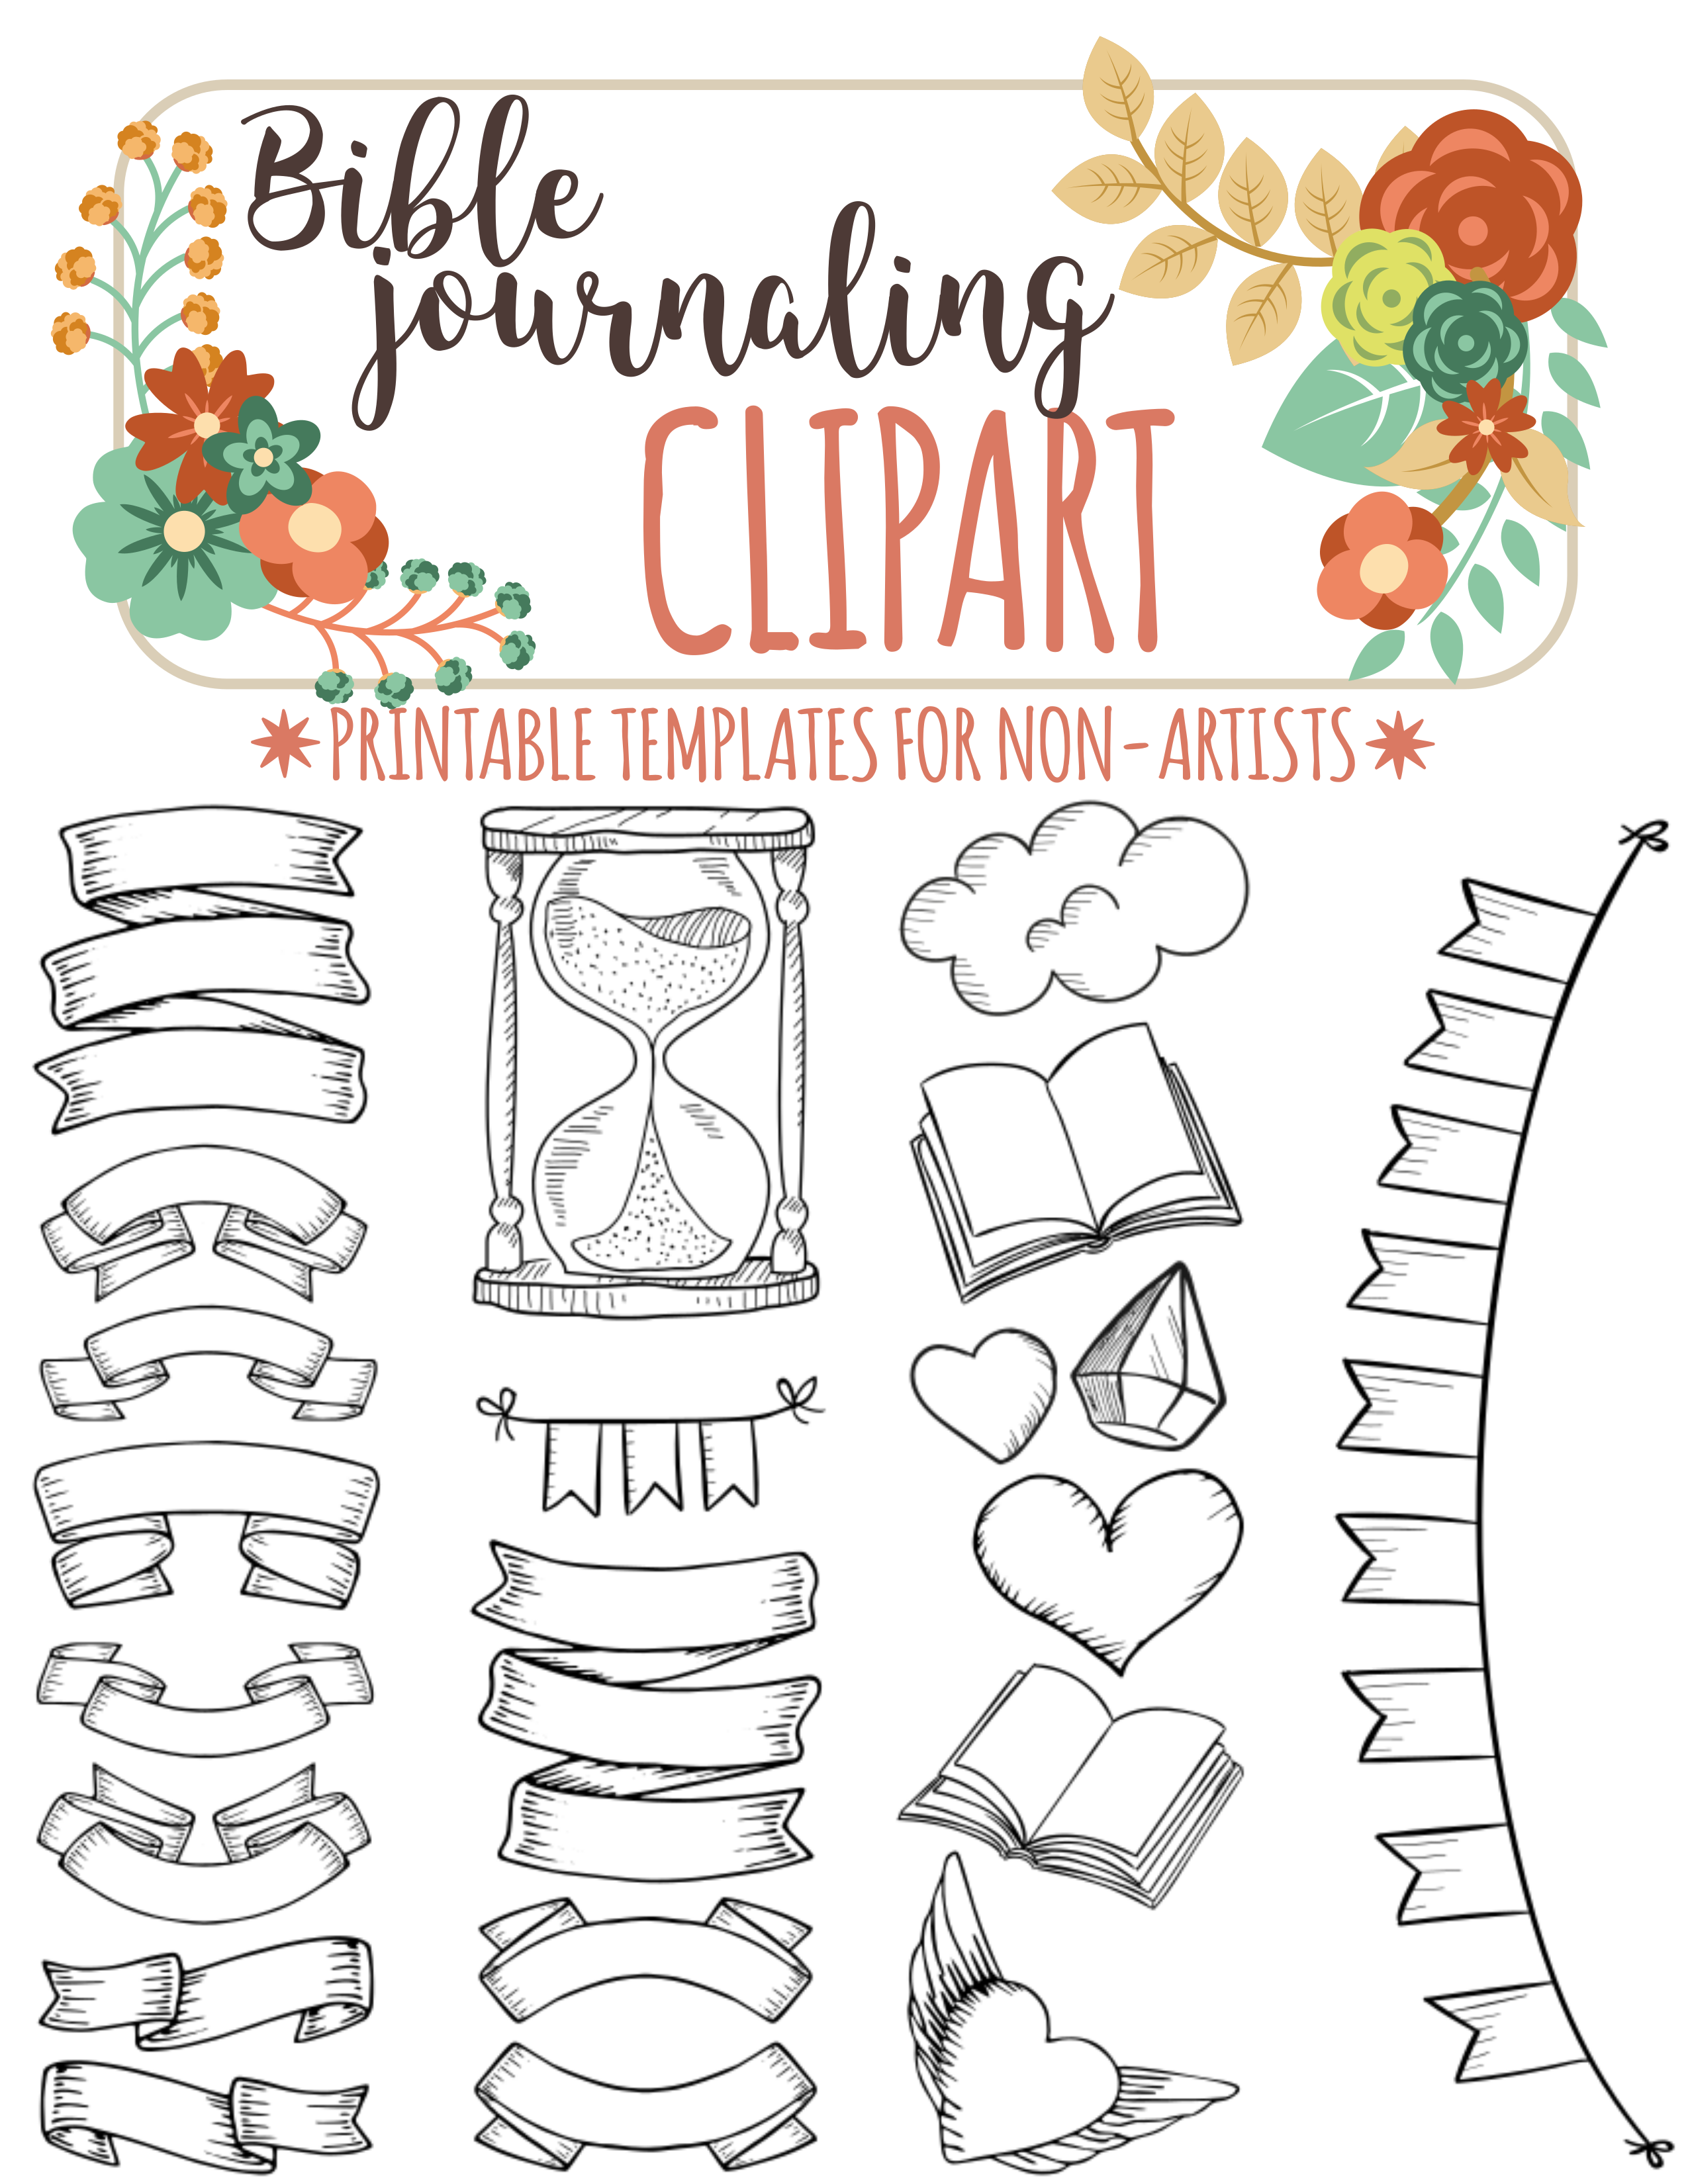 56 PRINTABLE TEMPLATES for bible journaling verse art, illustrated.